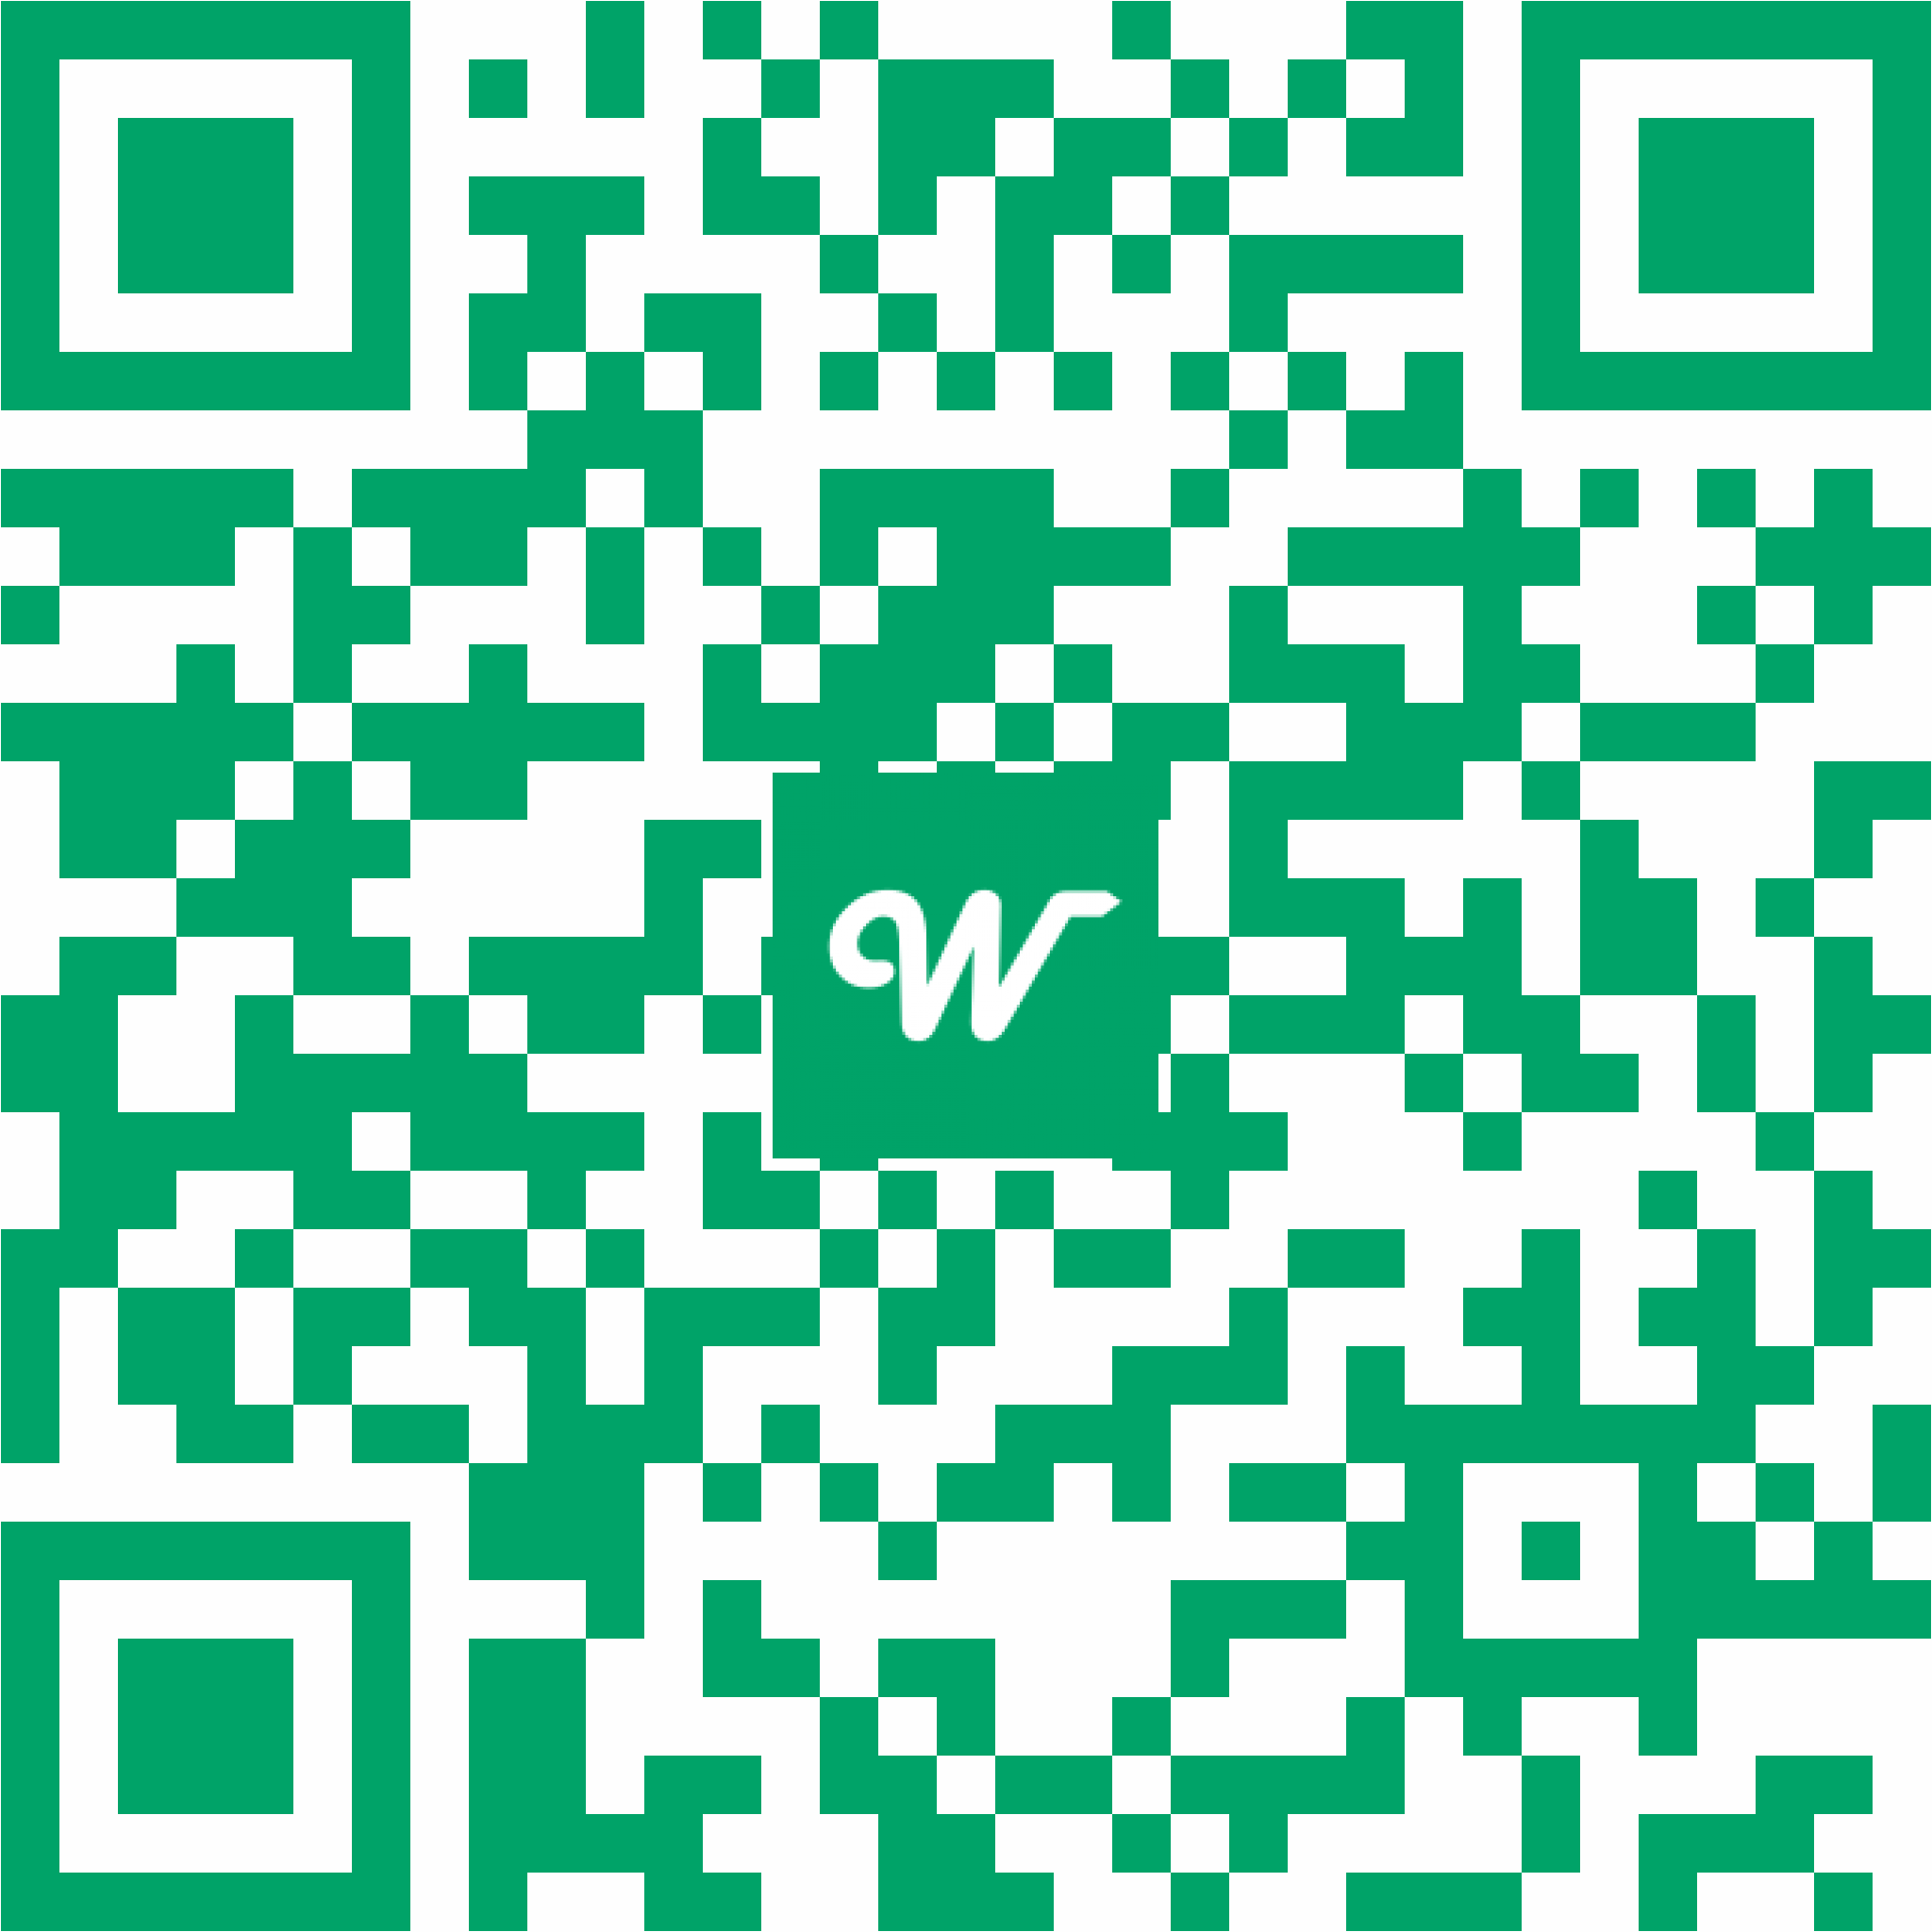 Printable QR code for Stricker St 4